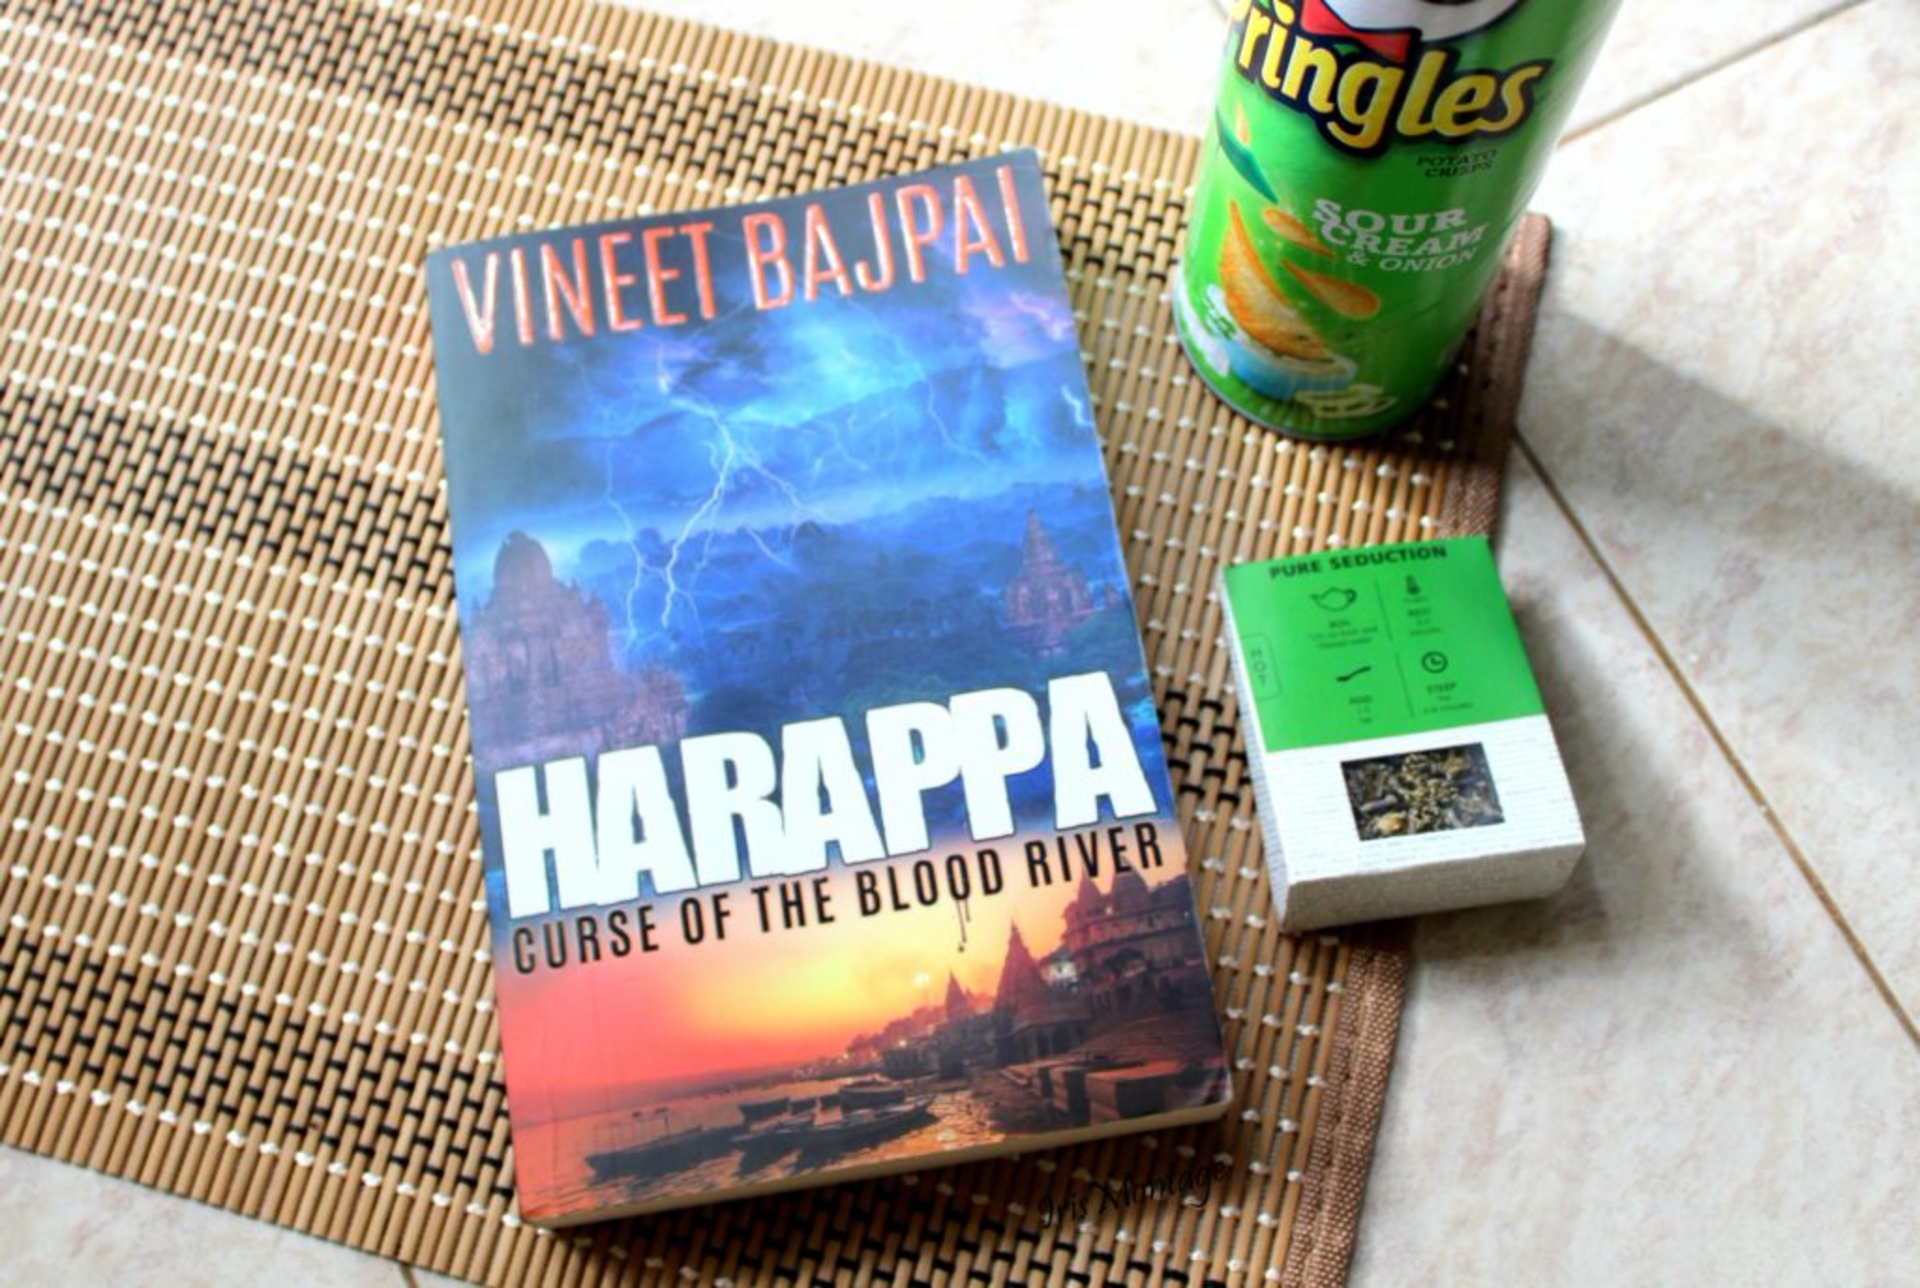 Harappa, Curse of the Blood River by Vineet Bajpai image